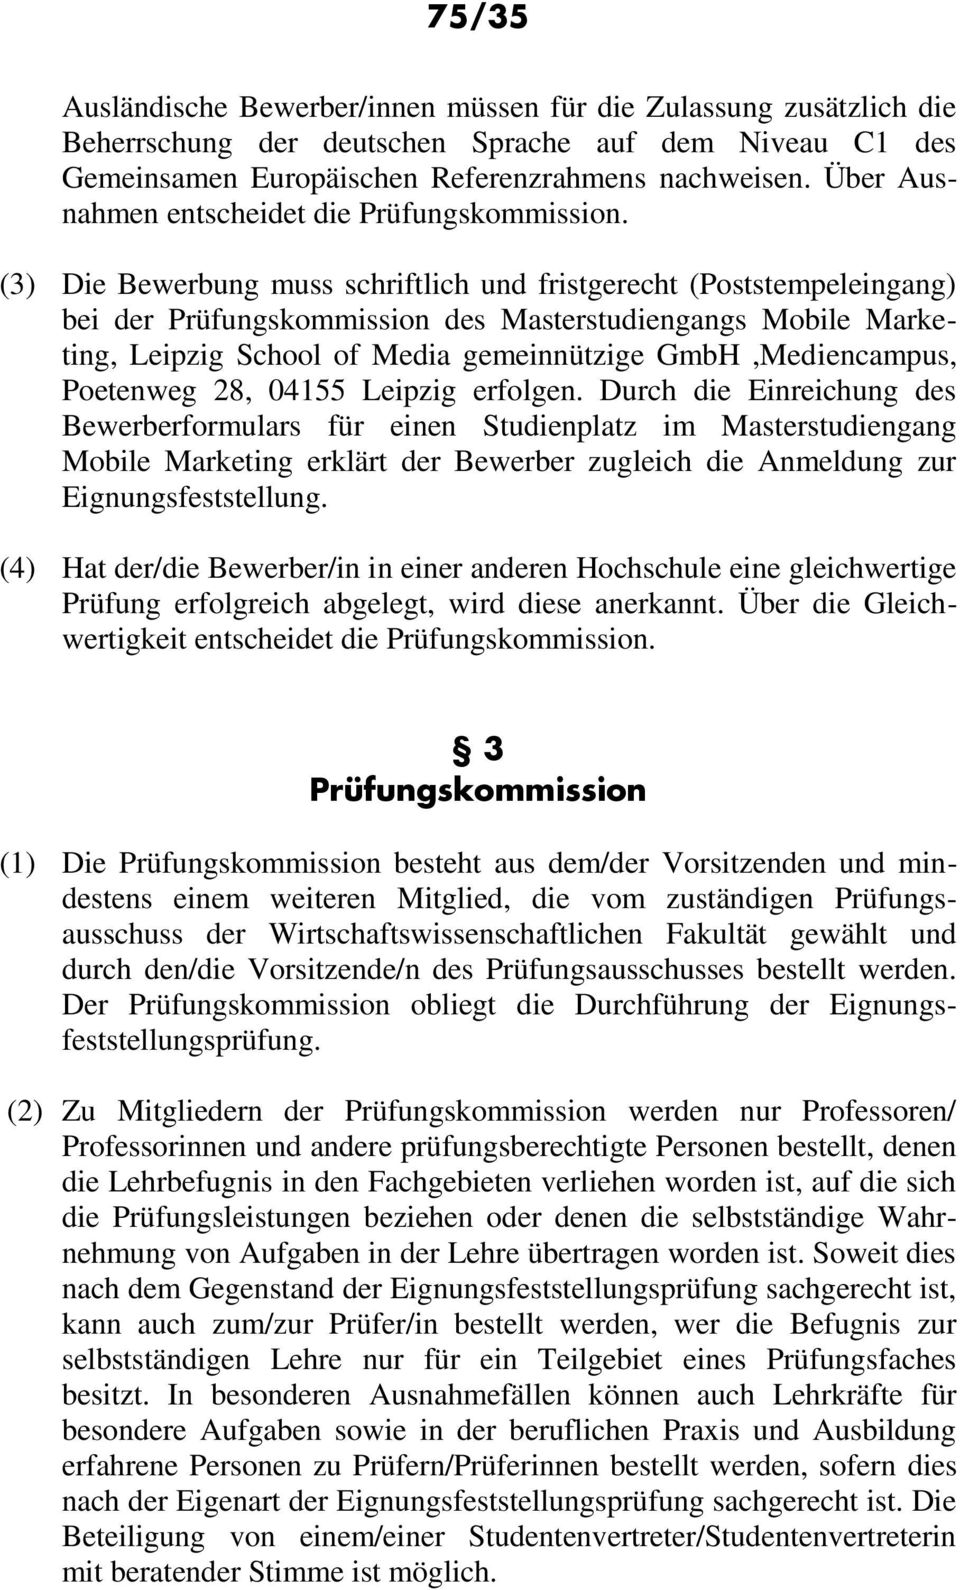 (3) Die Bewerbung muss schriftlich und fristgerecht (Poststempeleingang) bei der Prüfungskommission des Masterstudiengangs Mobile Marketing, Leipzig School of Media gemeinnützige GmbH,Mediencampus,